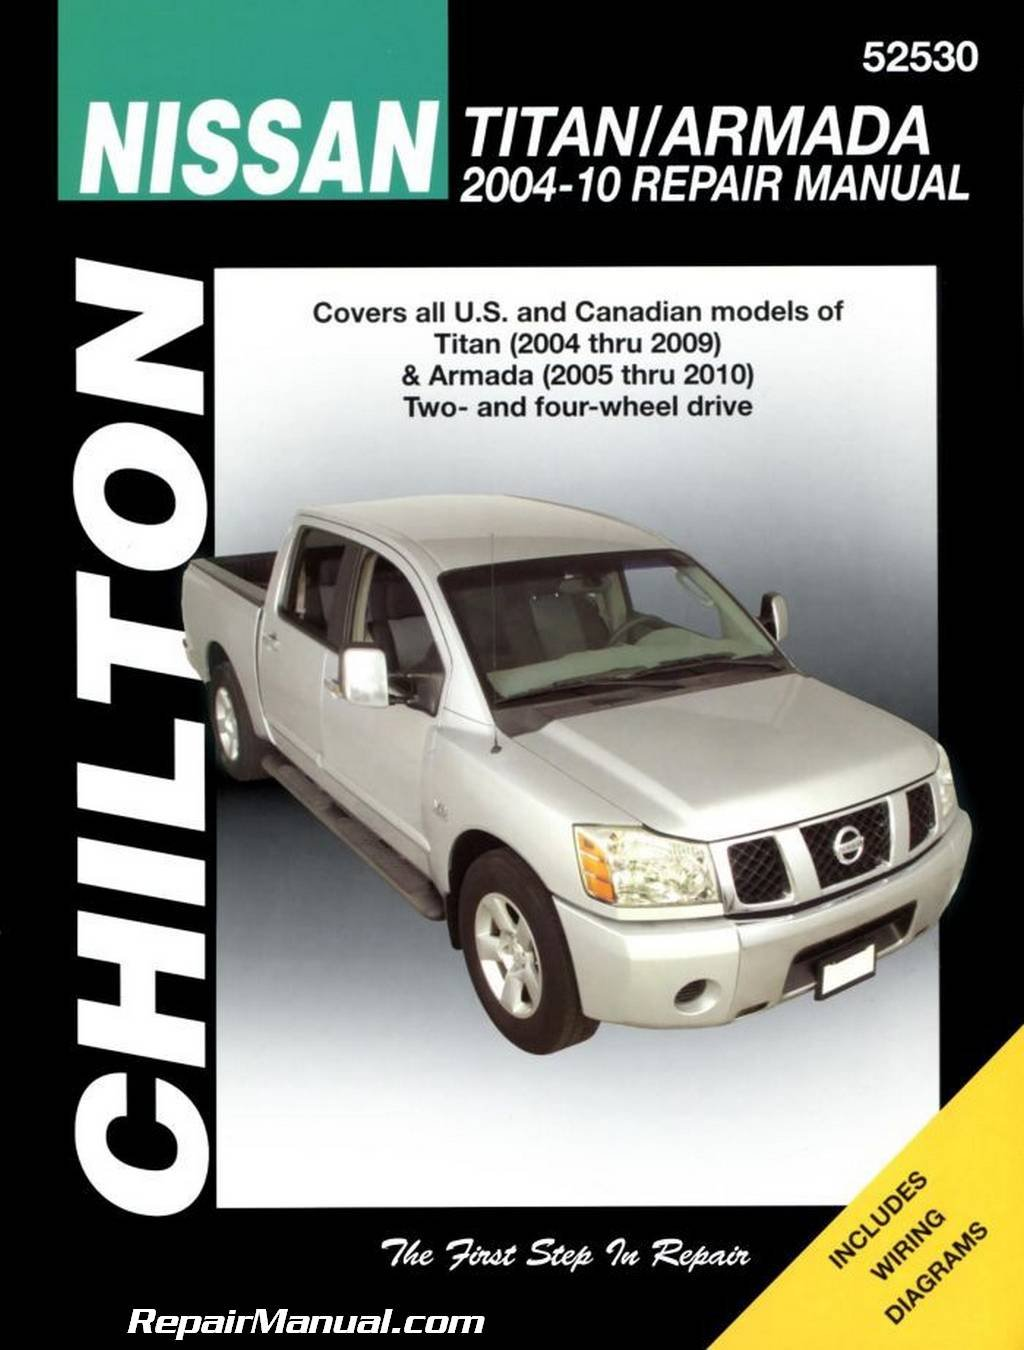 NOS-CH52530 Chilton 2004-2009 Nissan an 2005-2010 Nissan ... on 2011 buick regal fuse diagram, 2012 nissan versa fuse diagram, 1988 nissan 300zx fuse diagram, 2010 nissan armada bluetooth, 2007 nissan versa fuse diagram, 1995 nissan 200sx fuse diagram, 2007 nissan altima fuse diagram, 2010 nissan armada dash, 2009 nissan cube fuse diagram, 2000 nissan frontier fuse diagram, 2007 nissan maxima fuse diagram, 2010 nissan armada manual, 2004 nissan murano fuse diagram, 2005 nissan frontier fuse diagram, 2005 nissan 350z fuse diagram, 2009 pontiac vibe fuse diagram, 1997 nissan 200sx fuse diagram, 2000 bmw x5 fuse diagram, 2003 nissan 350z fuse diagram, 1999 nissan frontier fuse diagram,